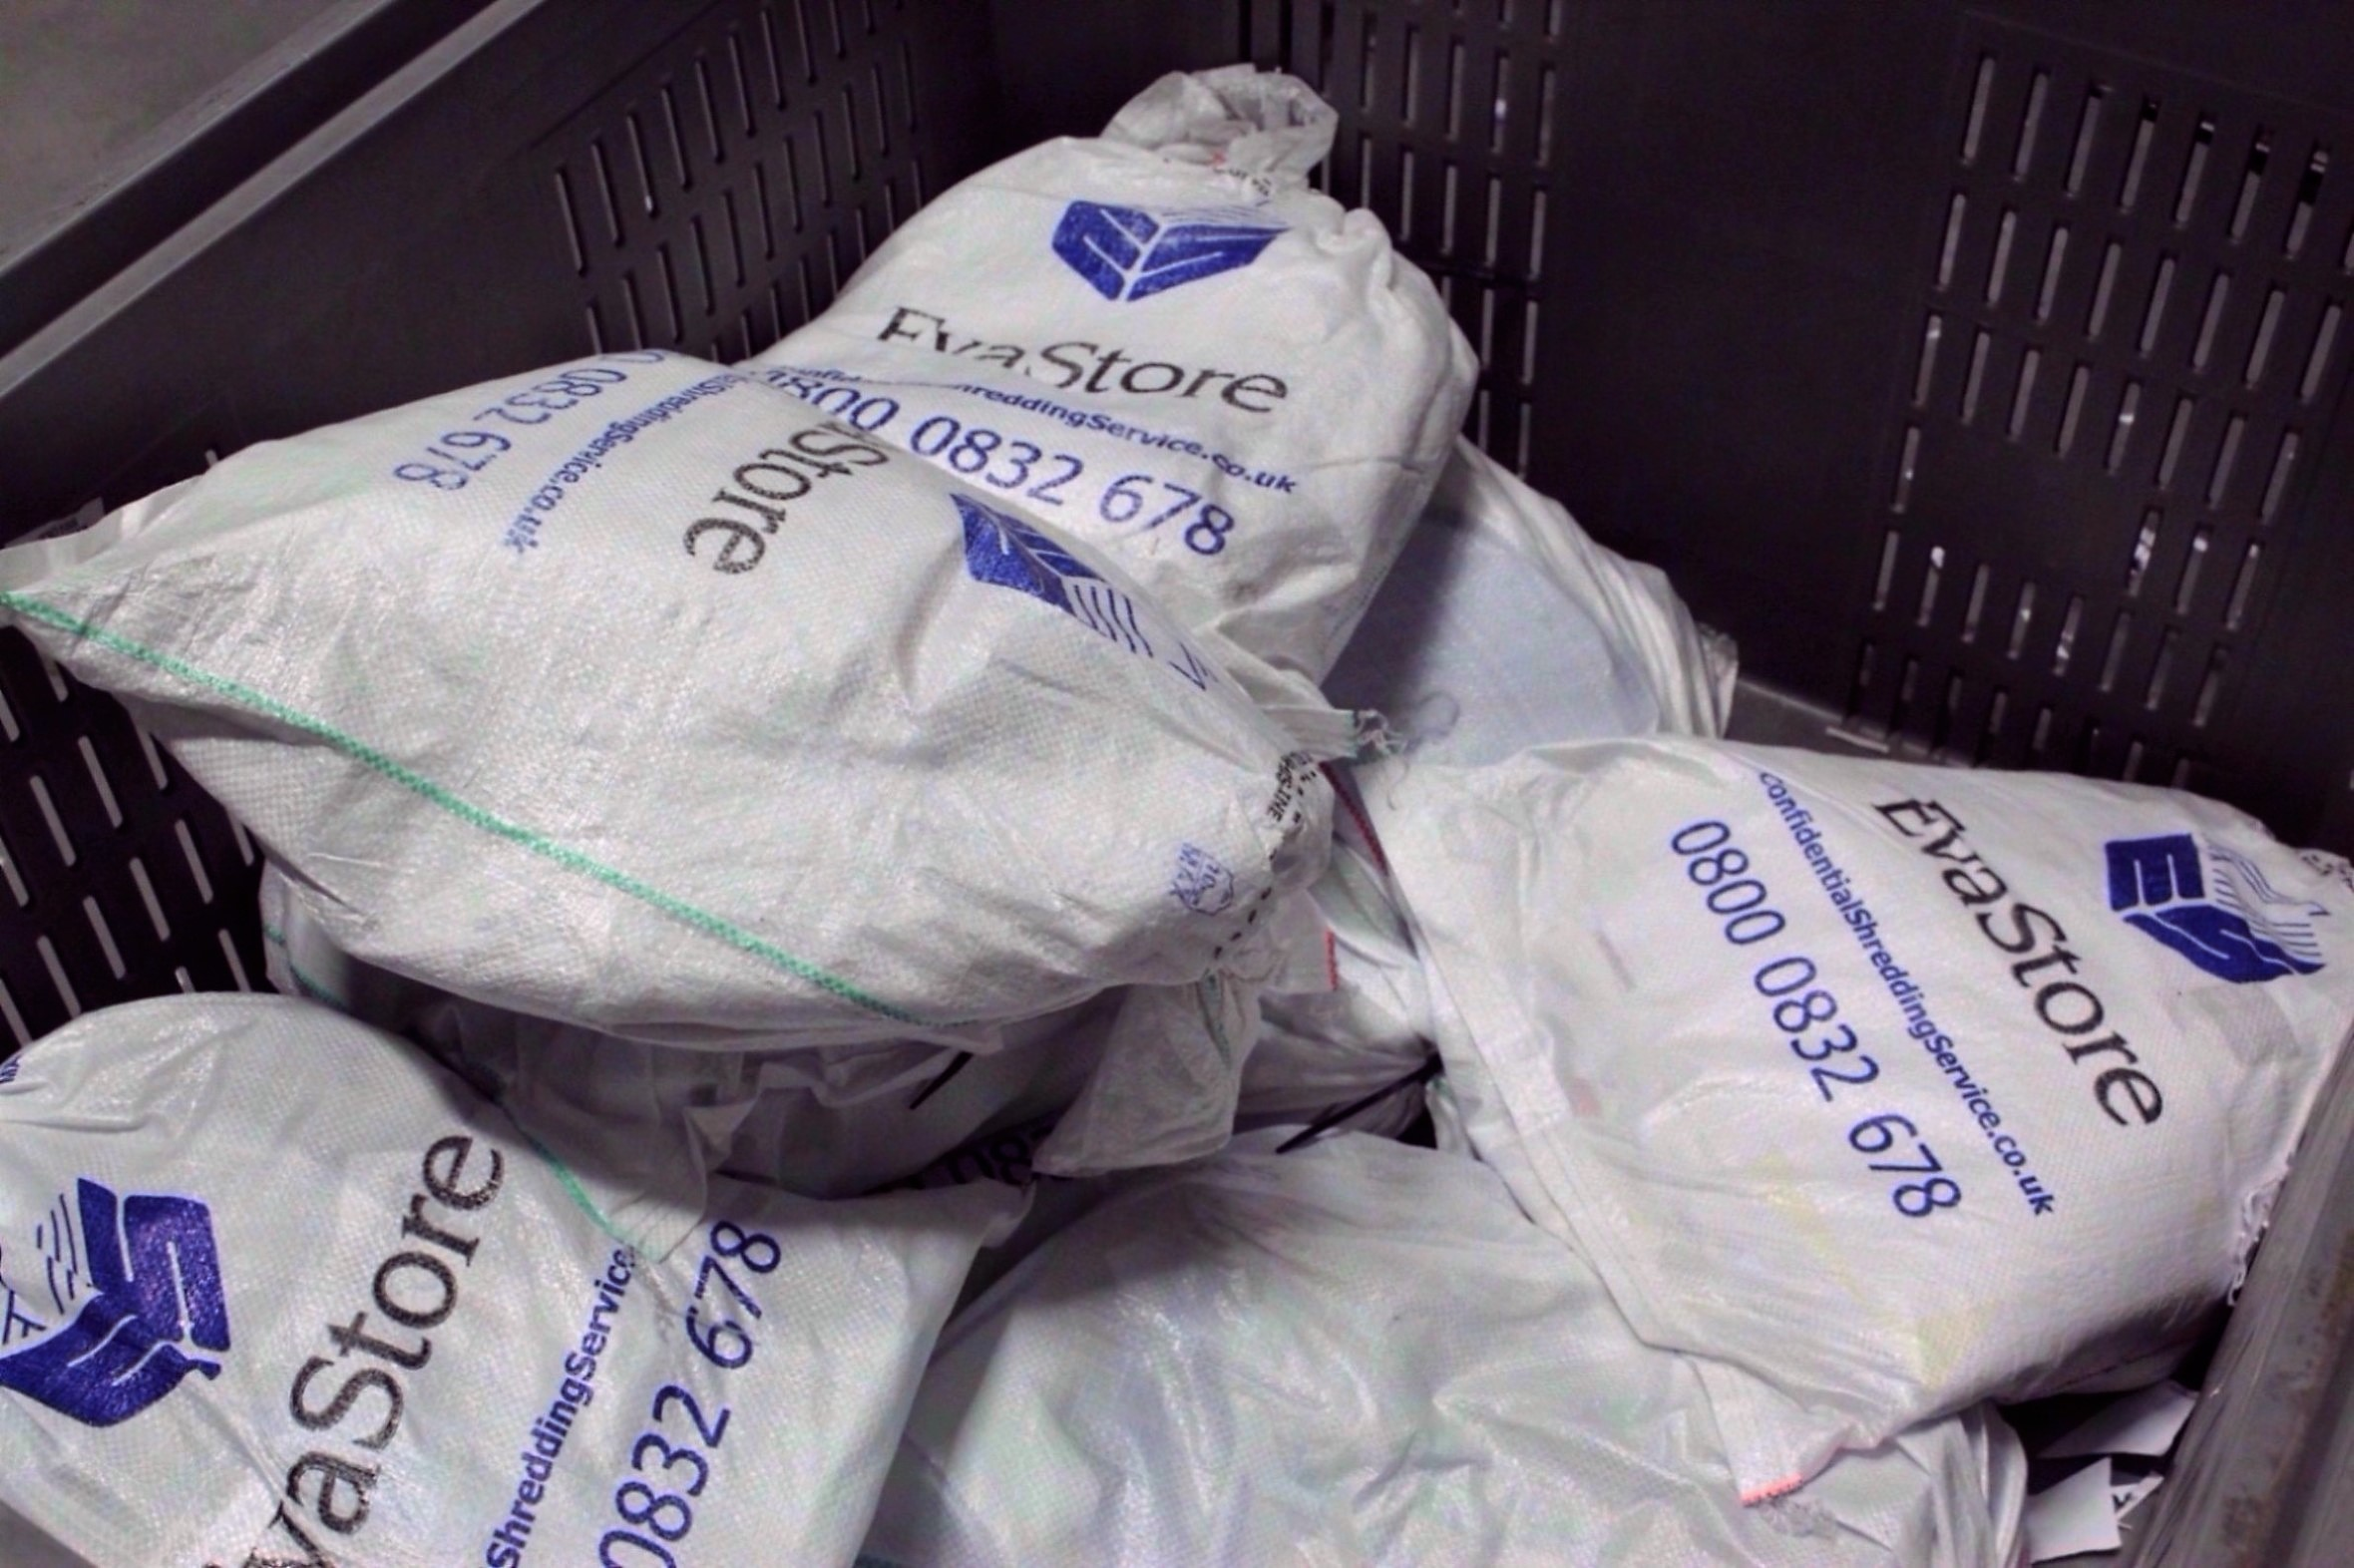 Bags of Shredded Documents